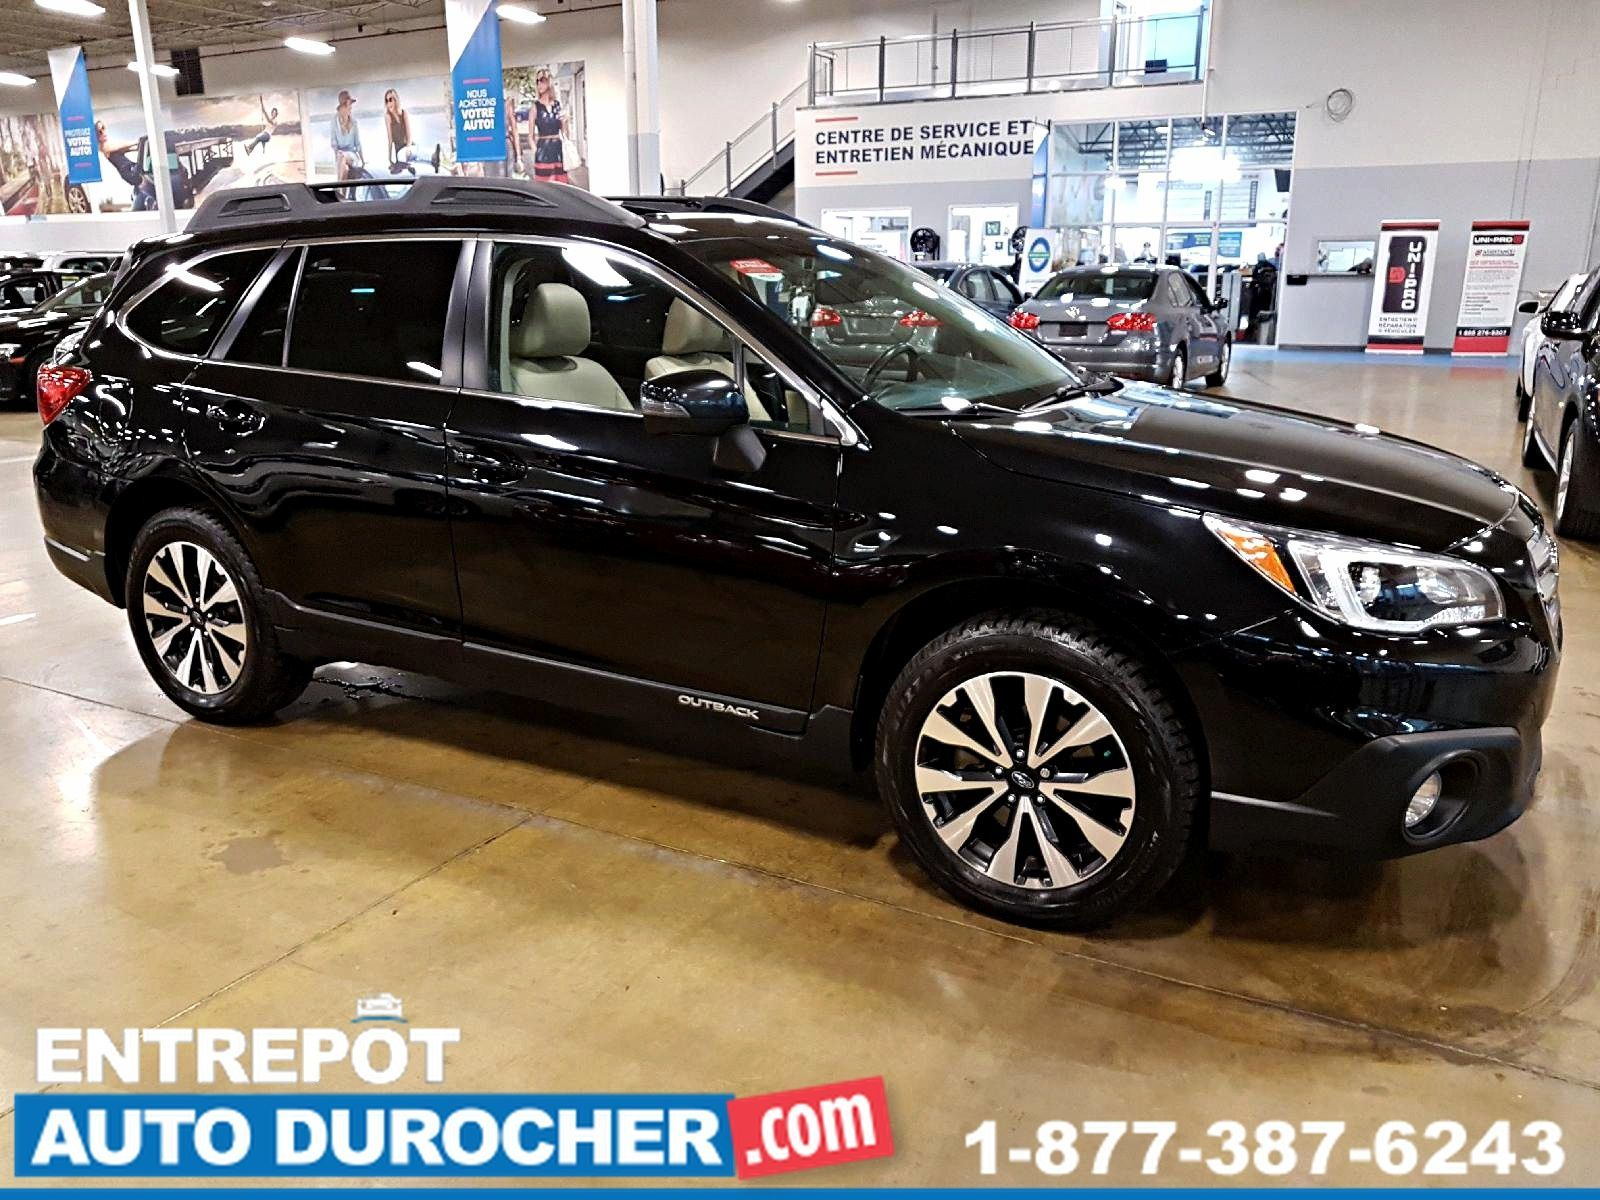 2015 Subaru Outback 3.6R Limited 4X4 NAVIGATION - TOIT OUVRANT - CUIR